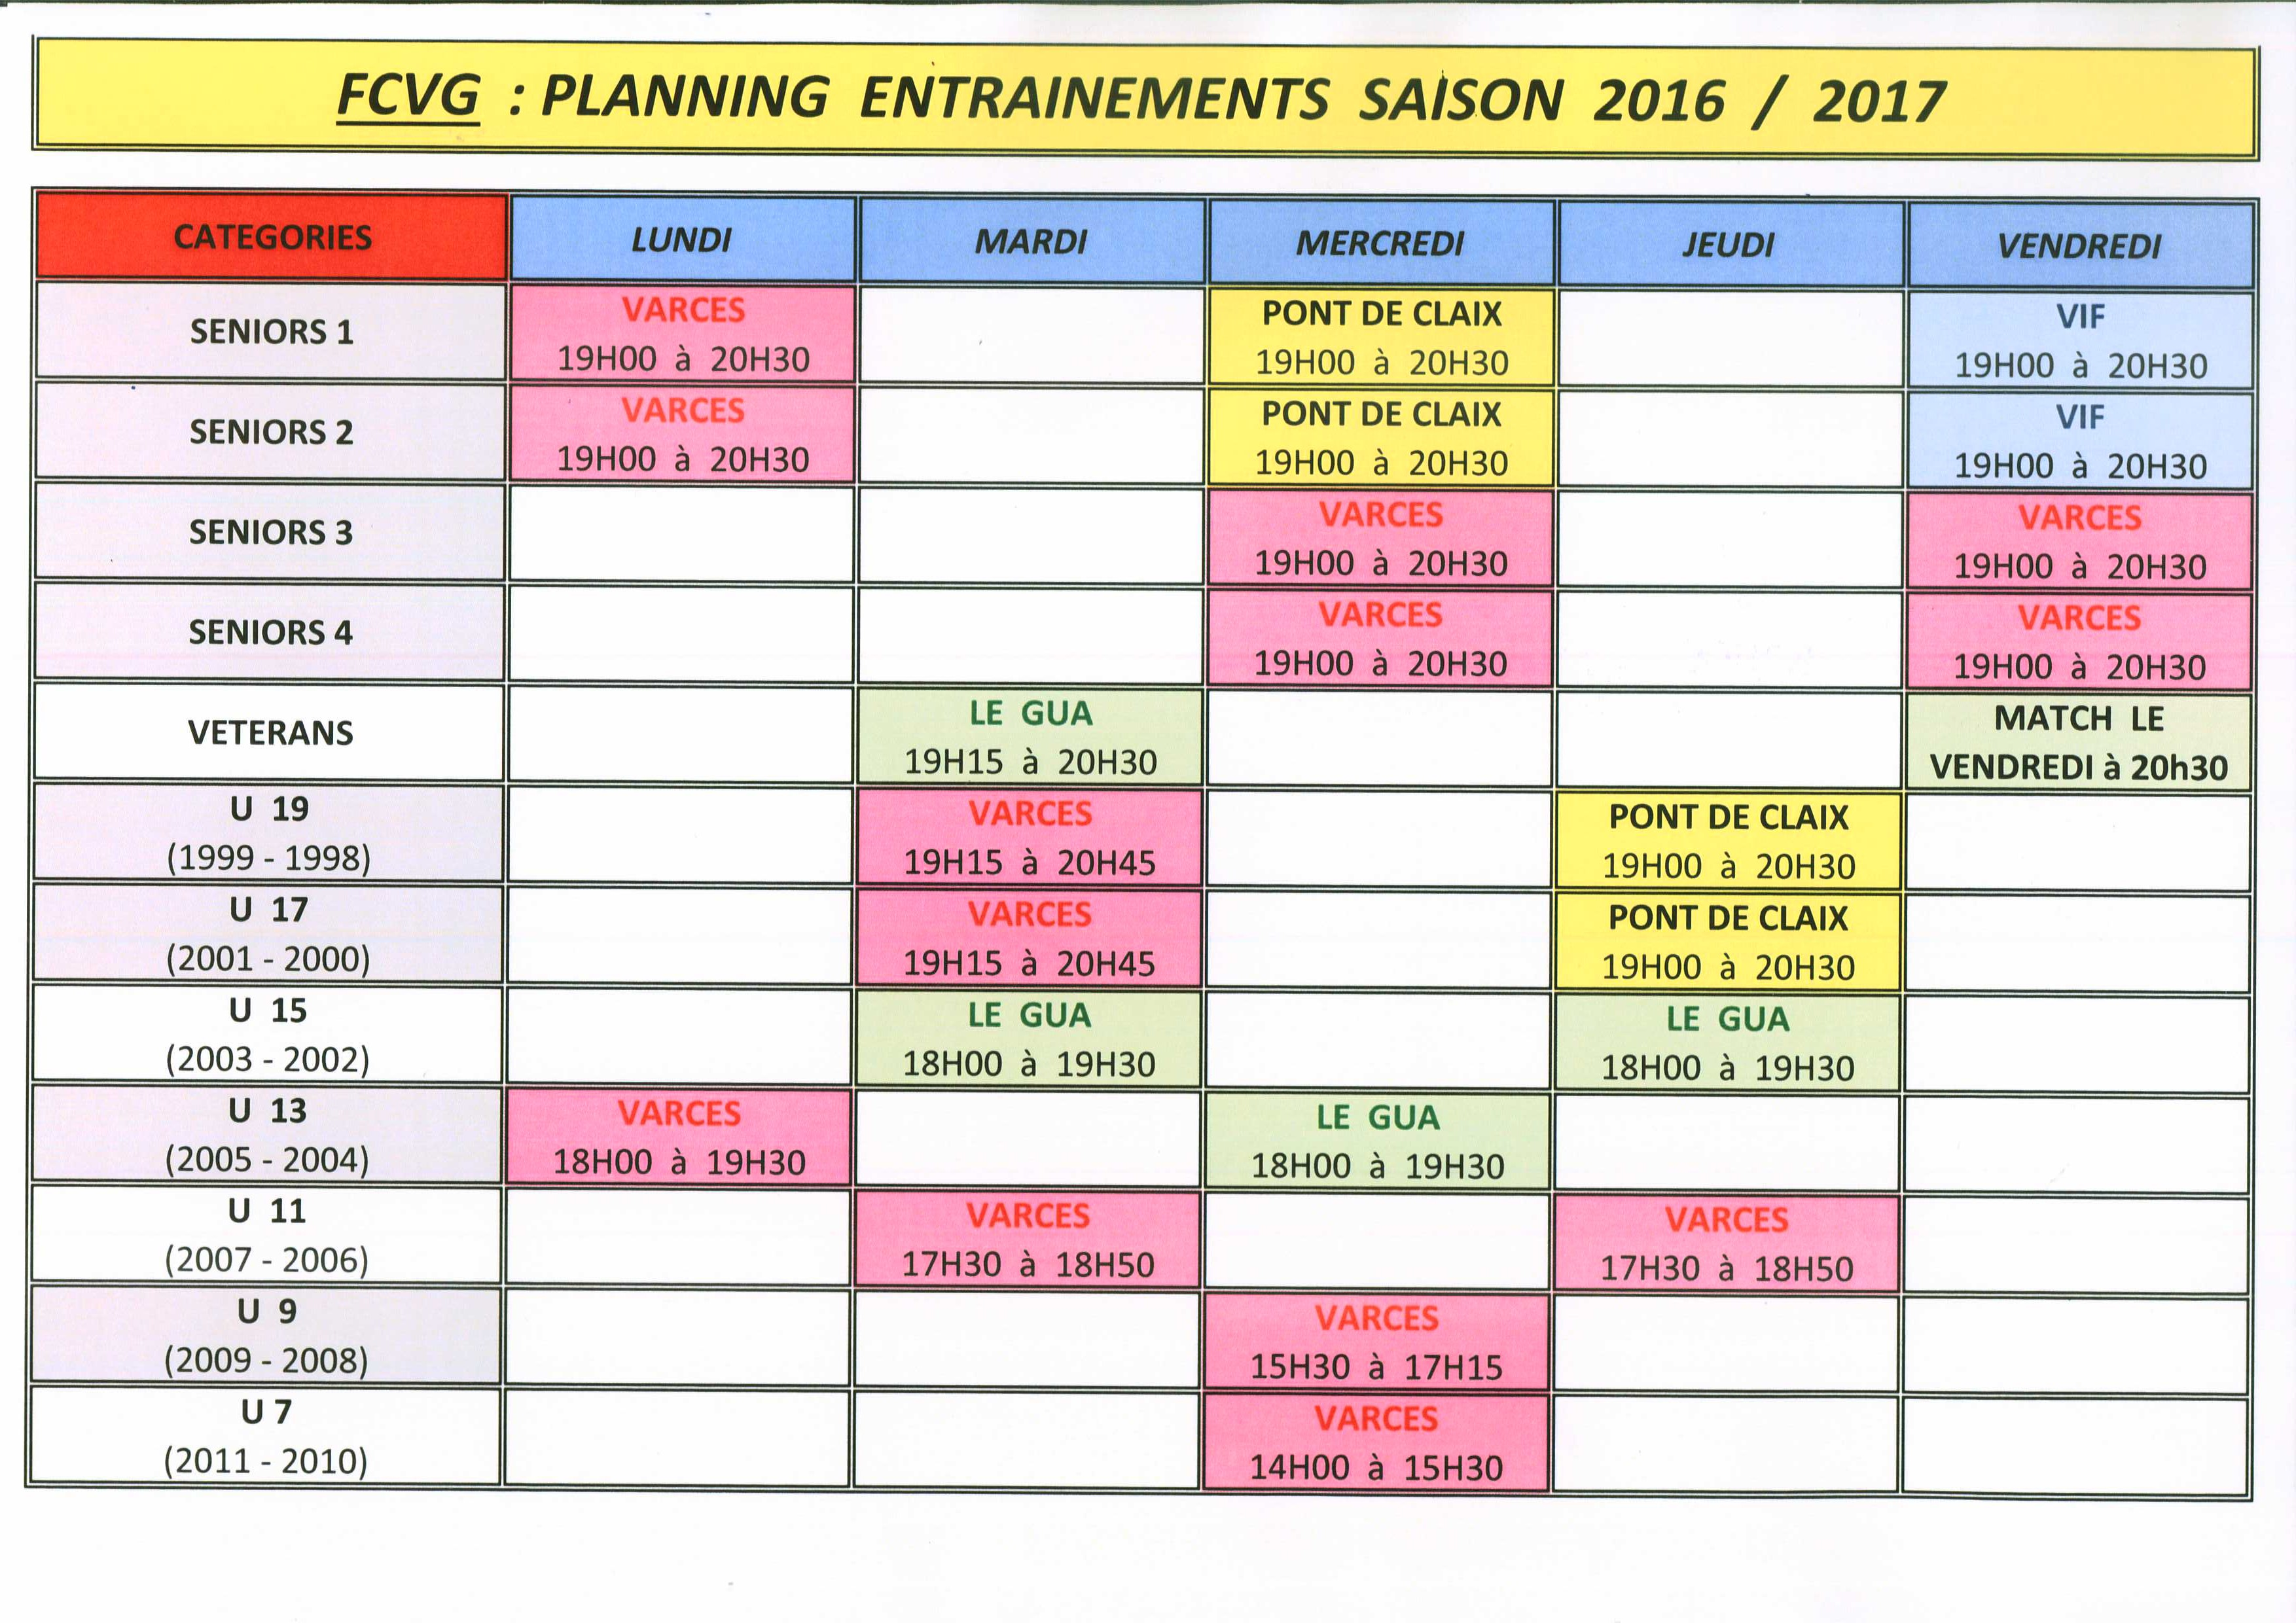 Planning Entraînements 2016.2017